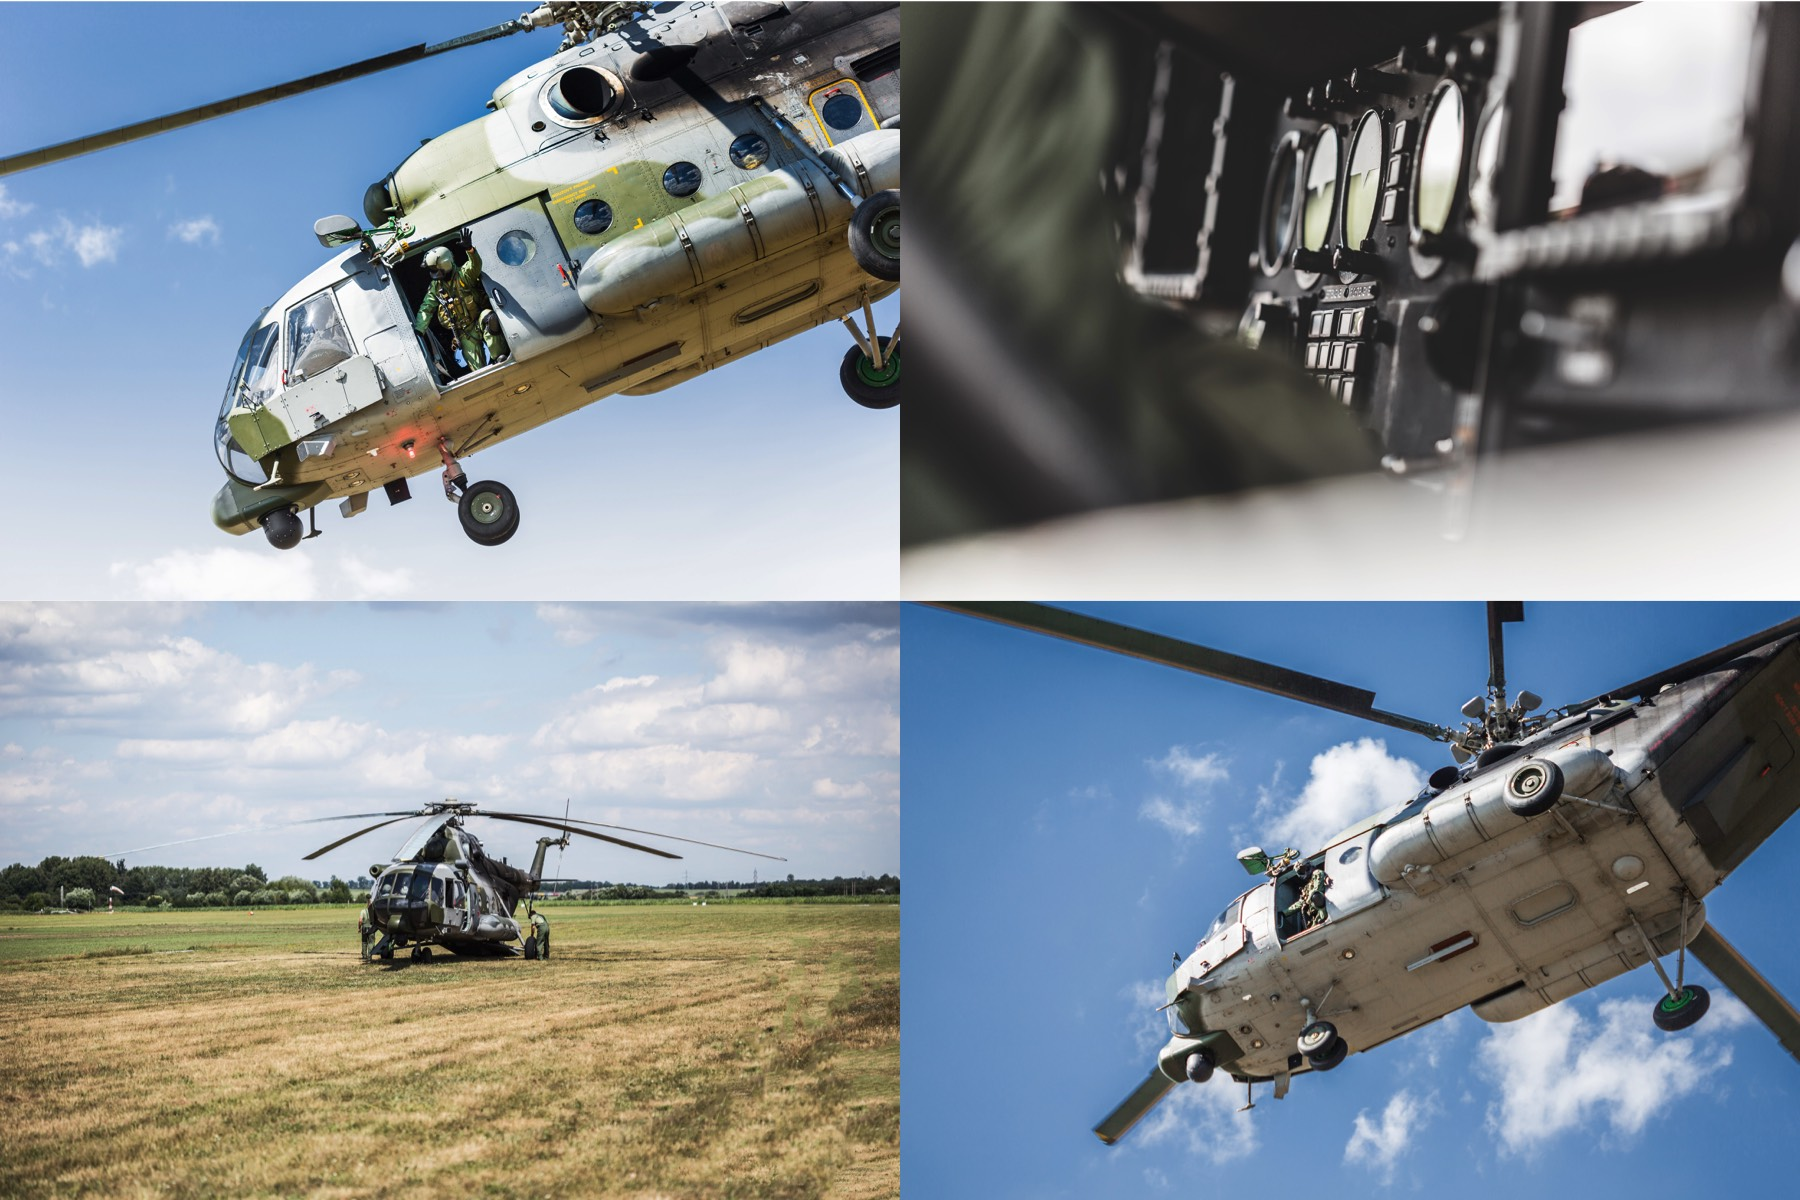 army-helicopter-picjumbo-premium-collection preview 2